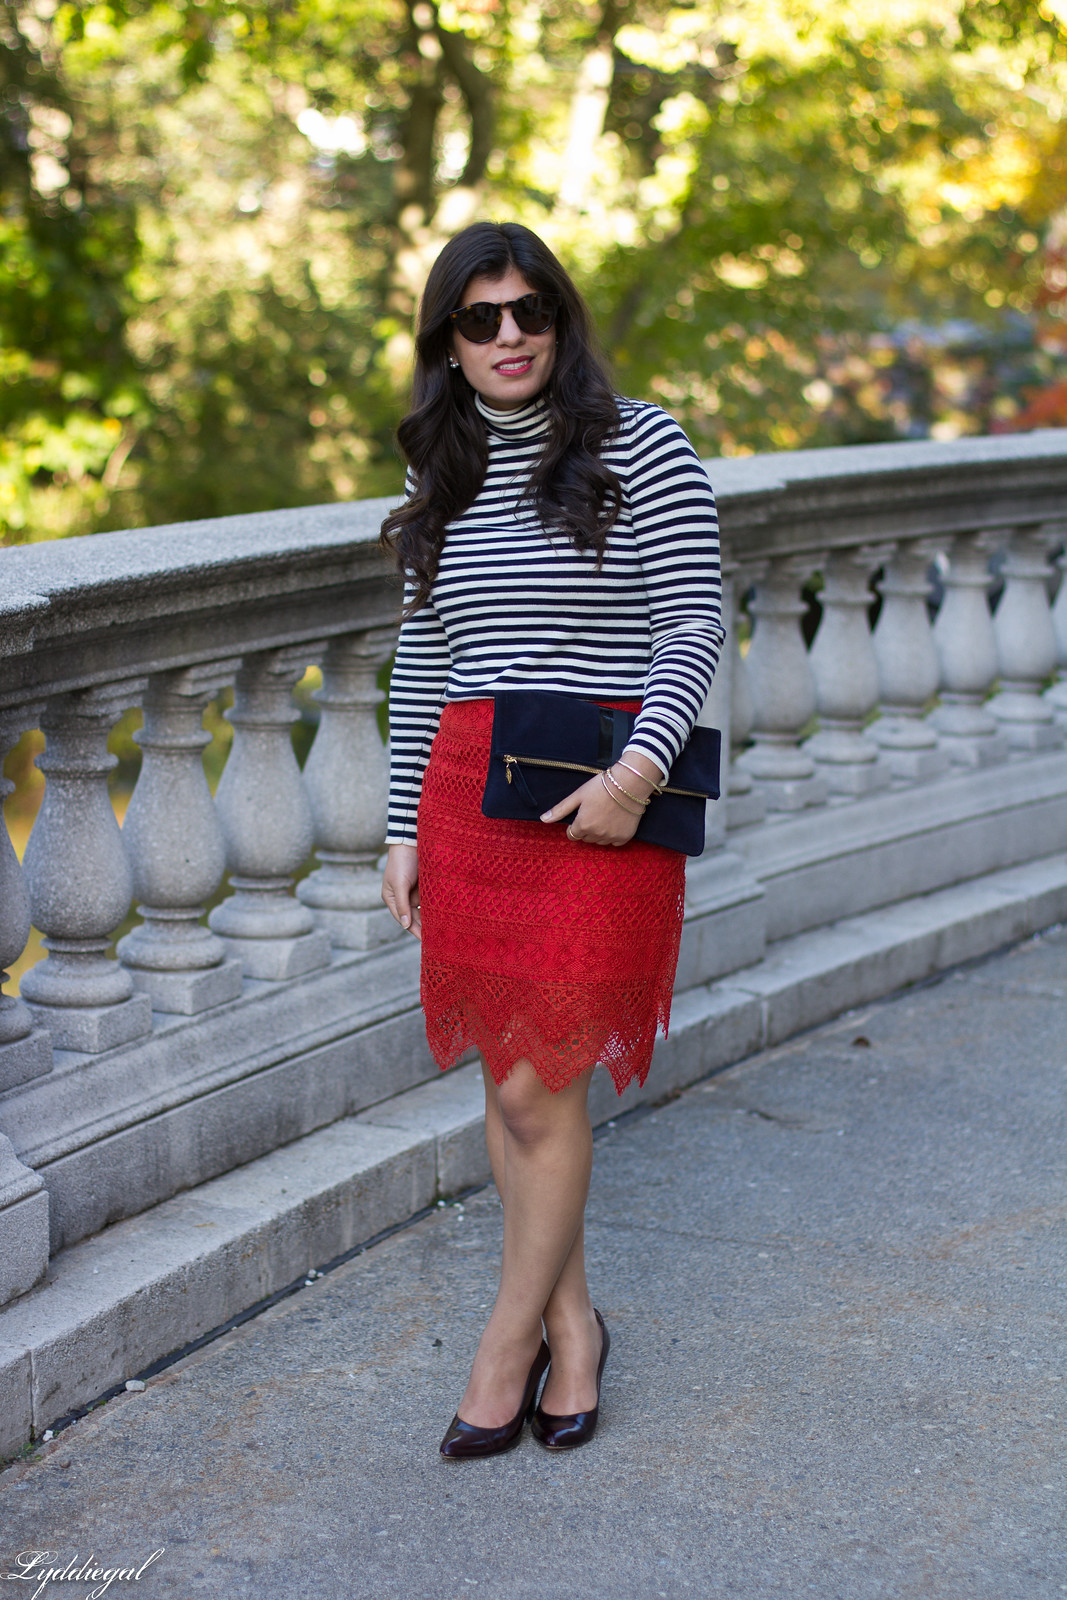 red lace skirt, striped shirt, navy clare v clutch, coach pumps-1.jpg